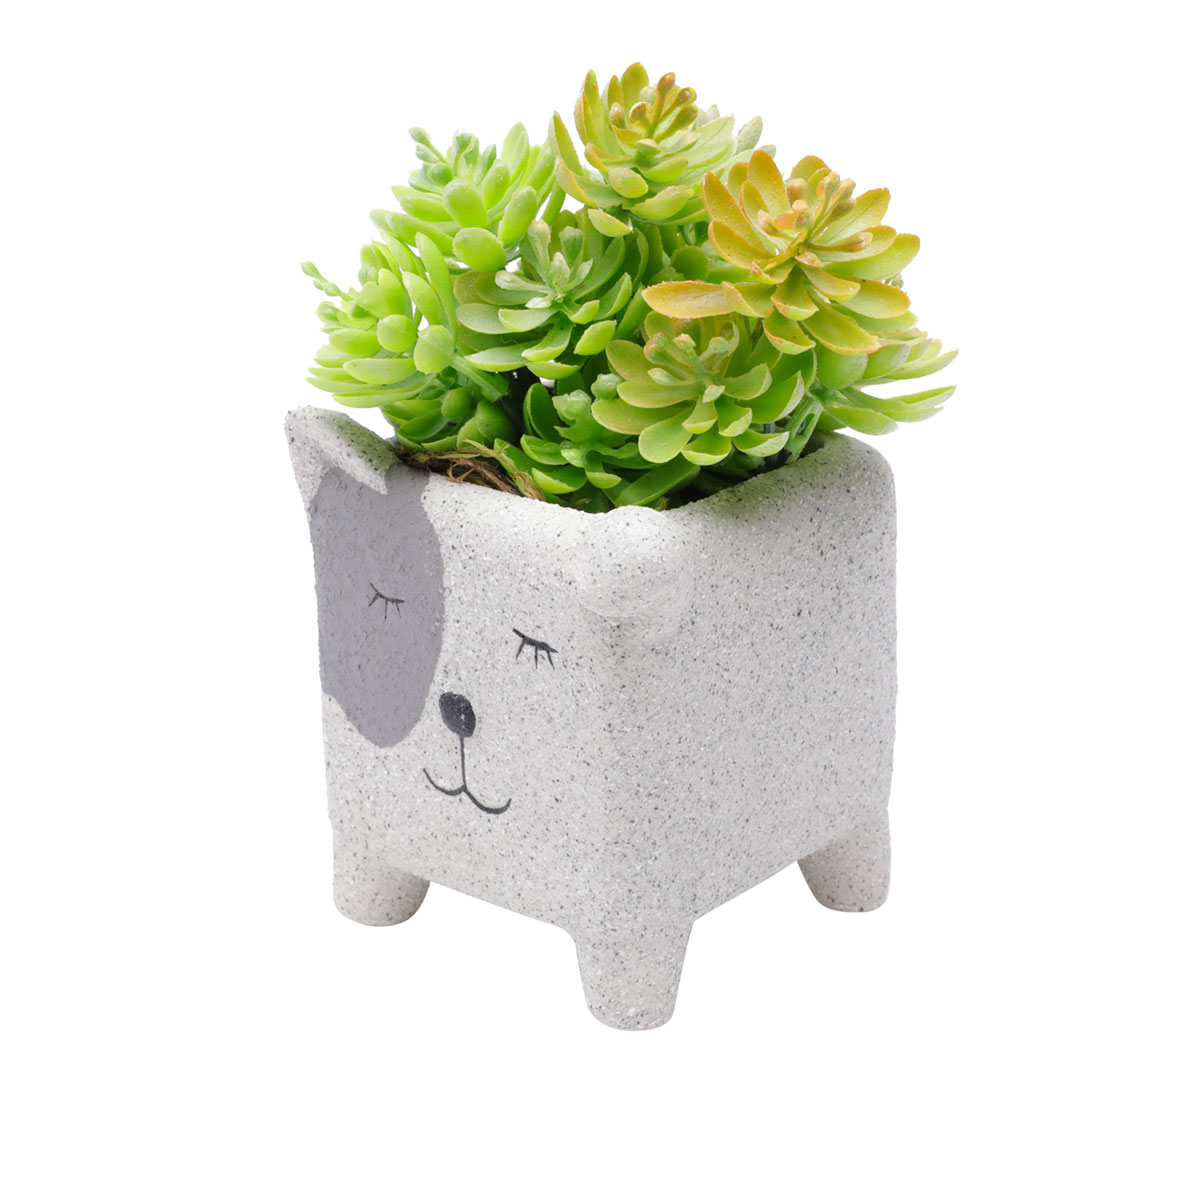 Cachepot Concreto Vaso Decorativo Sleeping Dog - Presente Super